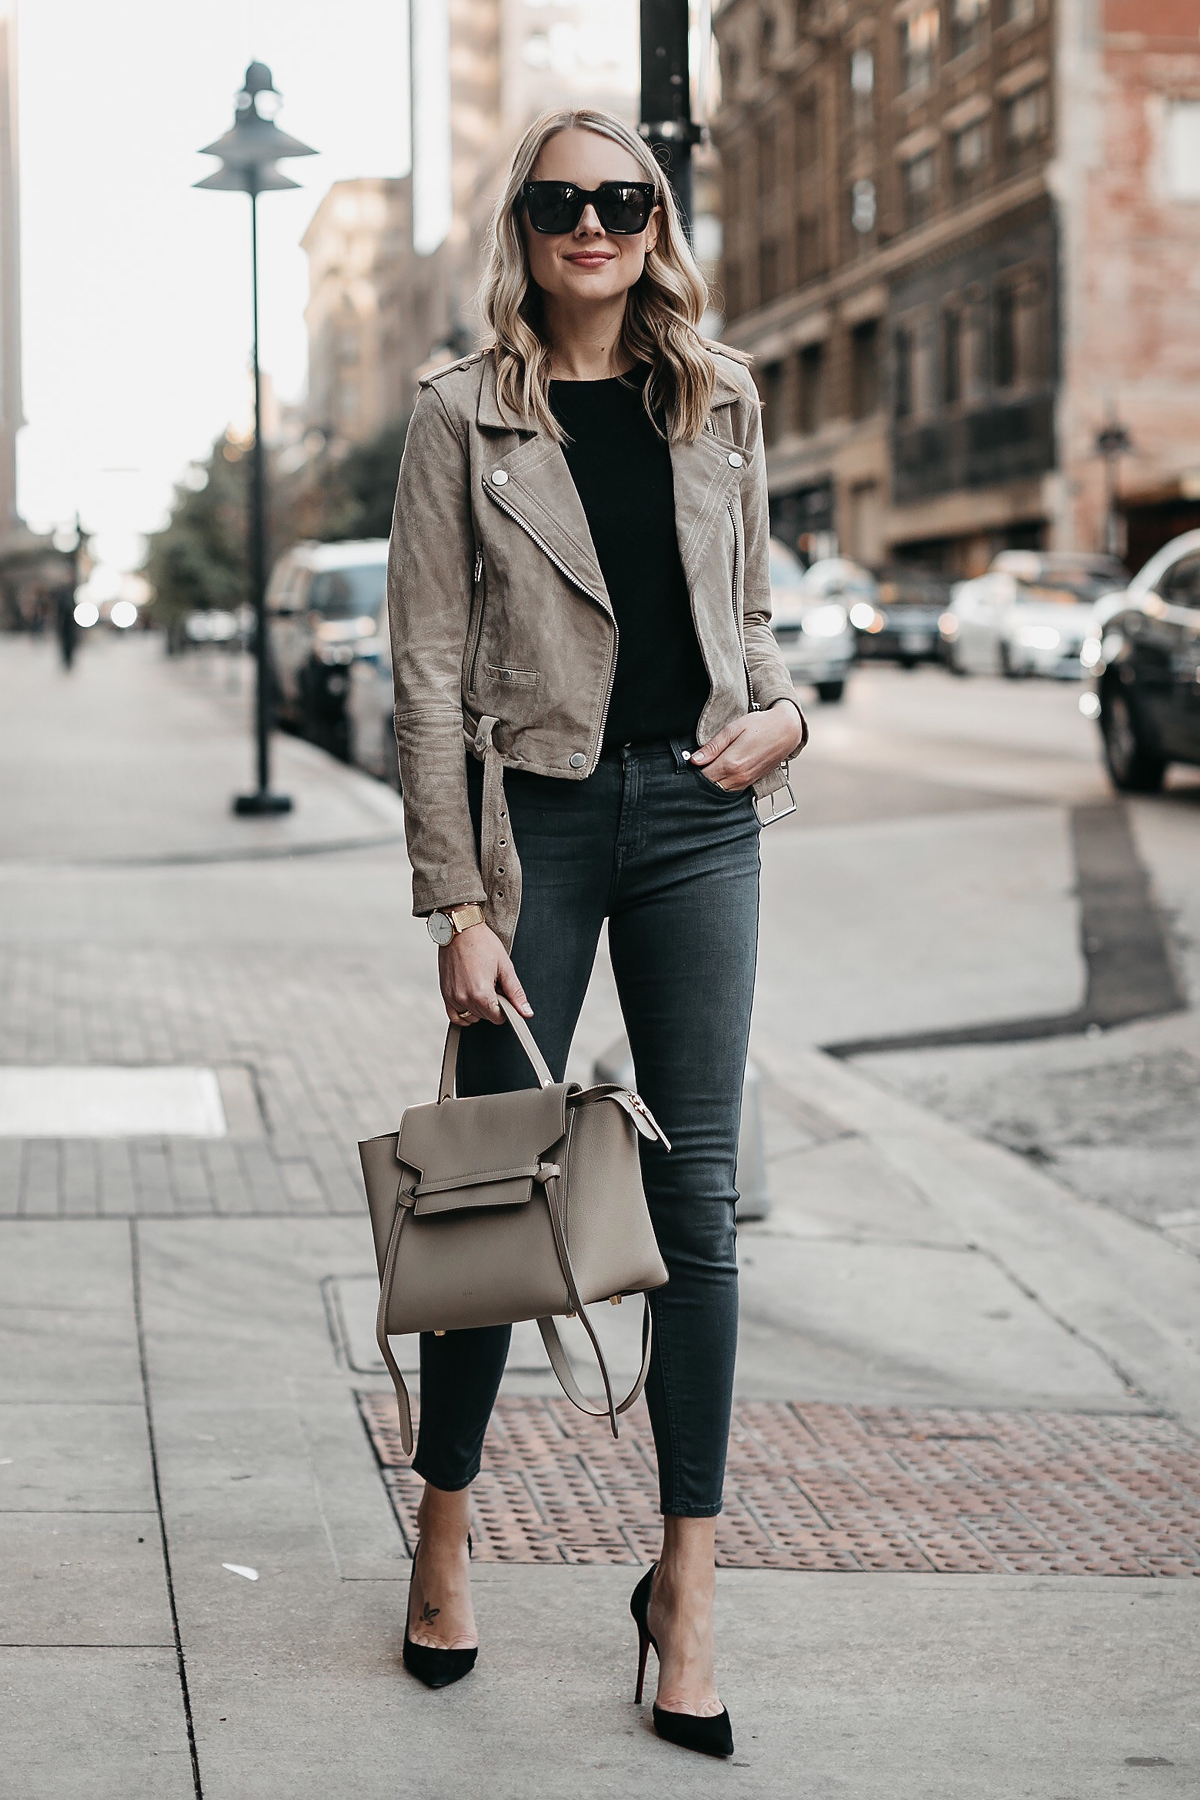 953bef05f9 Blonde Woman Wearing Blanknyc Suede Moto Jacket Black Sweater 7 For All  Mankind Grey Skinny Jeans